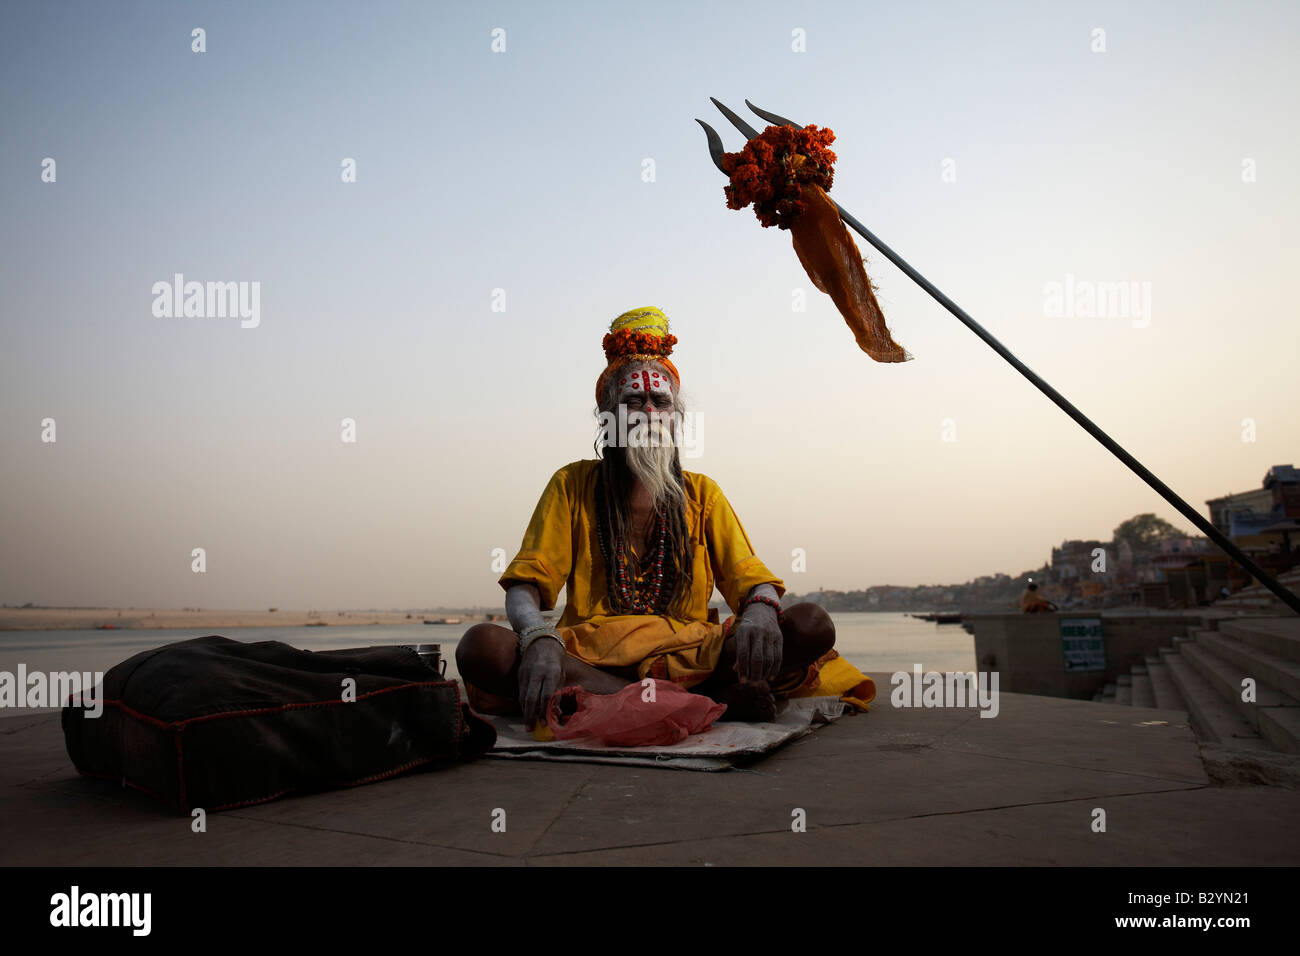 An Indian sadhu man sits in meditation posture near the bank of the Ganges river. - Stock Image